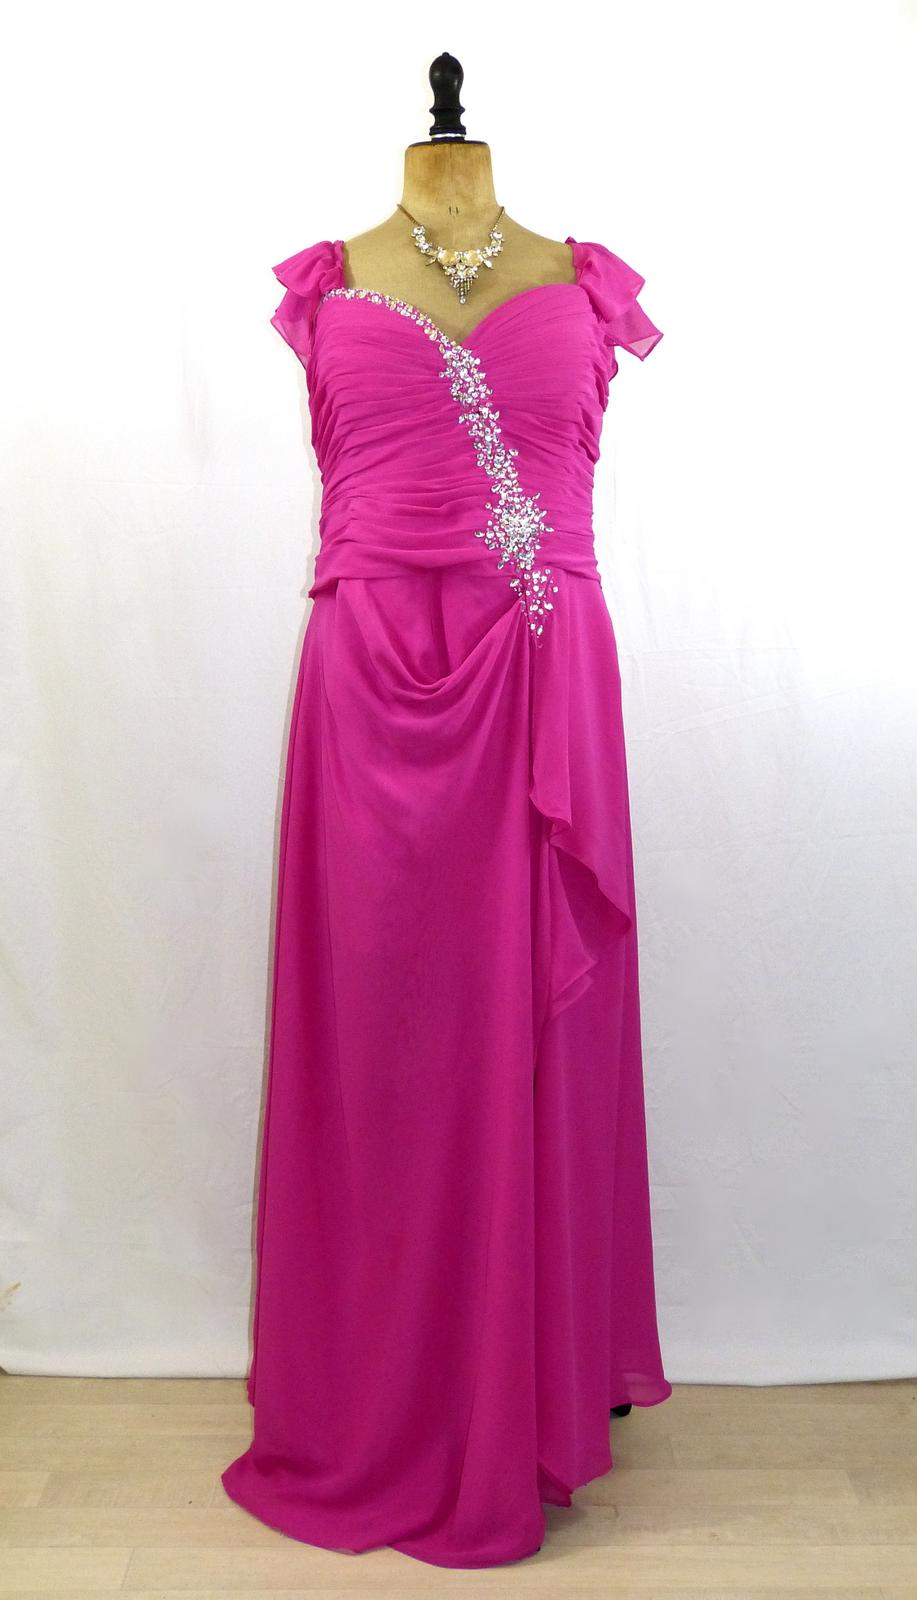 location robe grande taille ines 01. location robe grande taille pepita 01.  Location de robe de soirée ... d997a47472a3